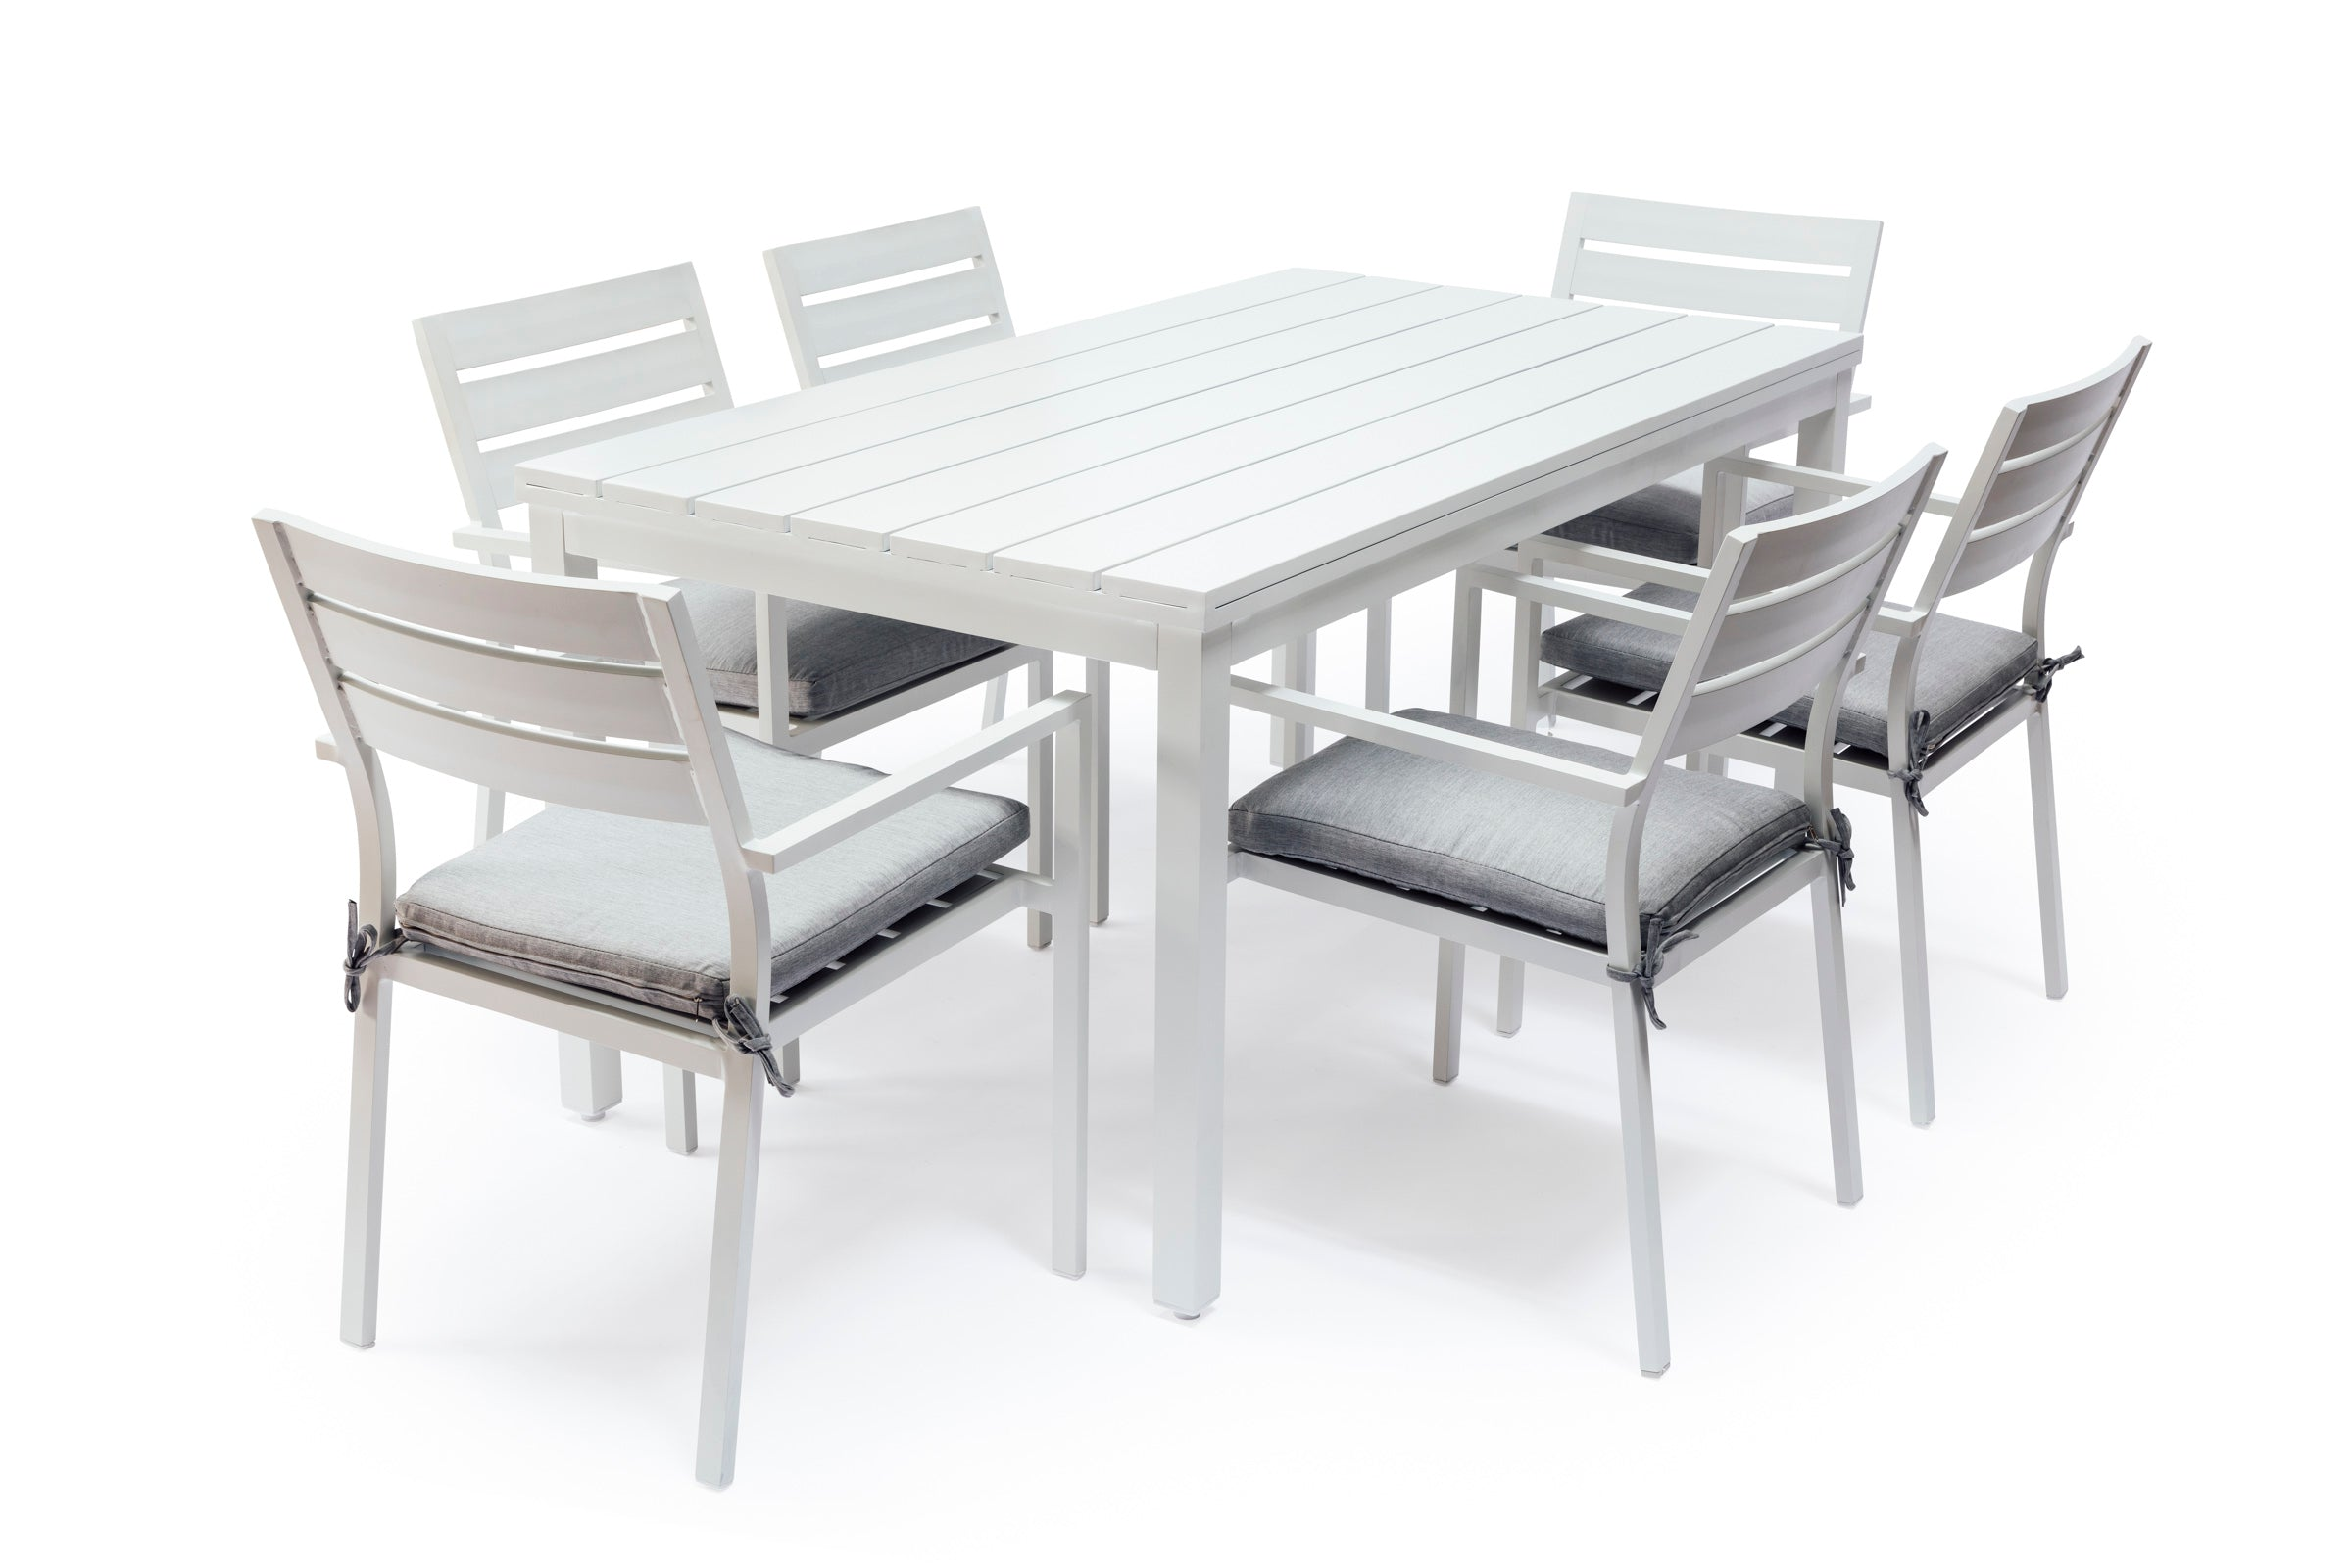 whitehaven aluminium 6 seat outdoor dining table and chairs ansan rh ansanoutdoor com au outdoor aluminium furniture paint outdoor furniture aluminium nz